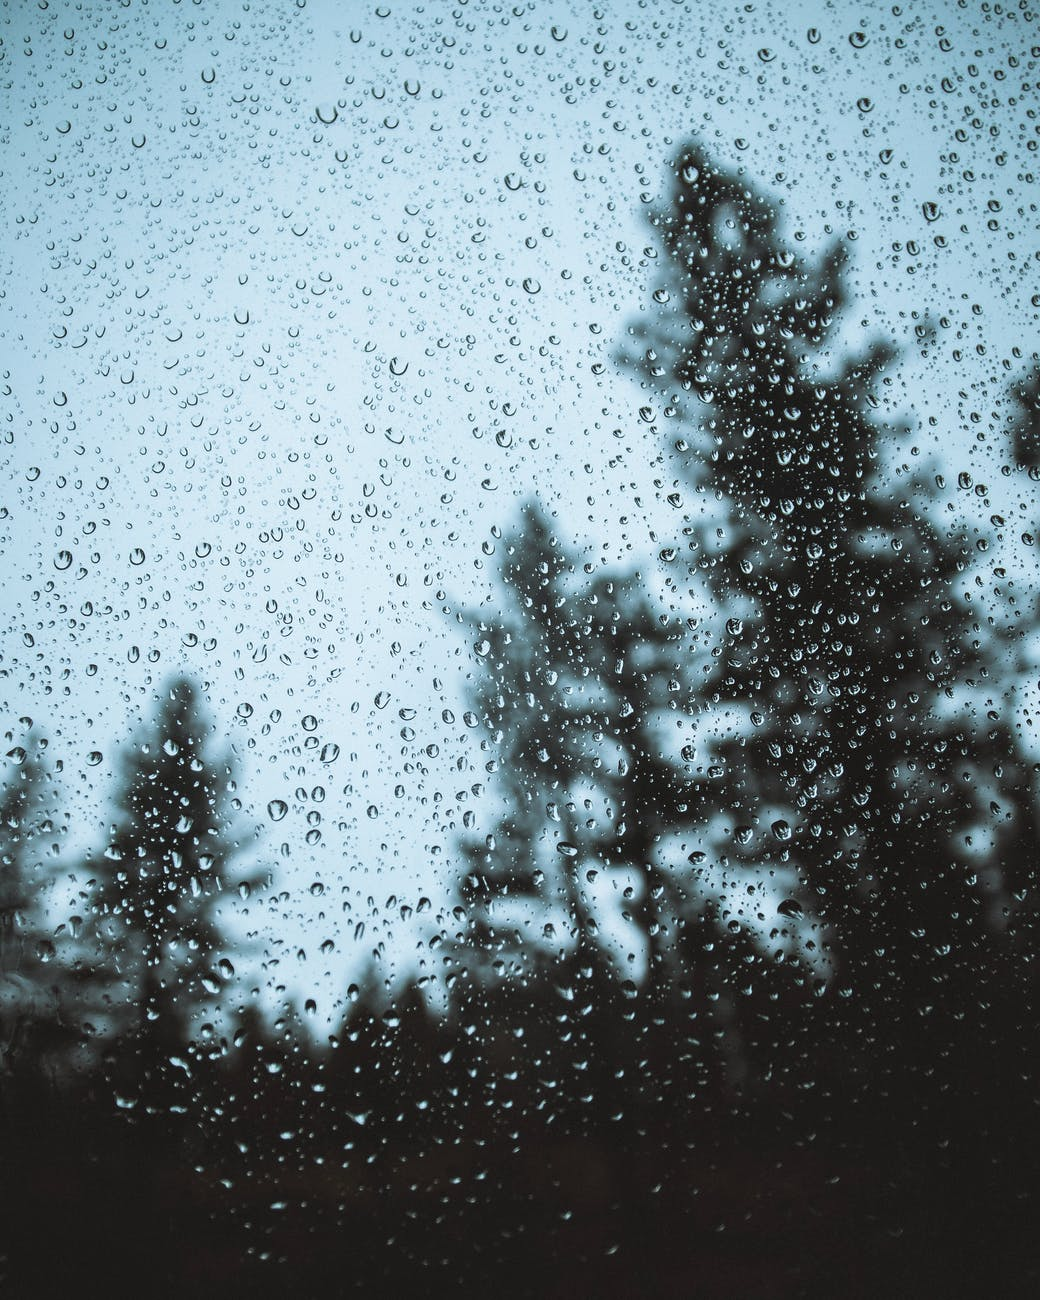 overgrown trees from window with drops in rainy weather